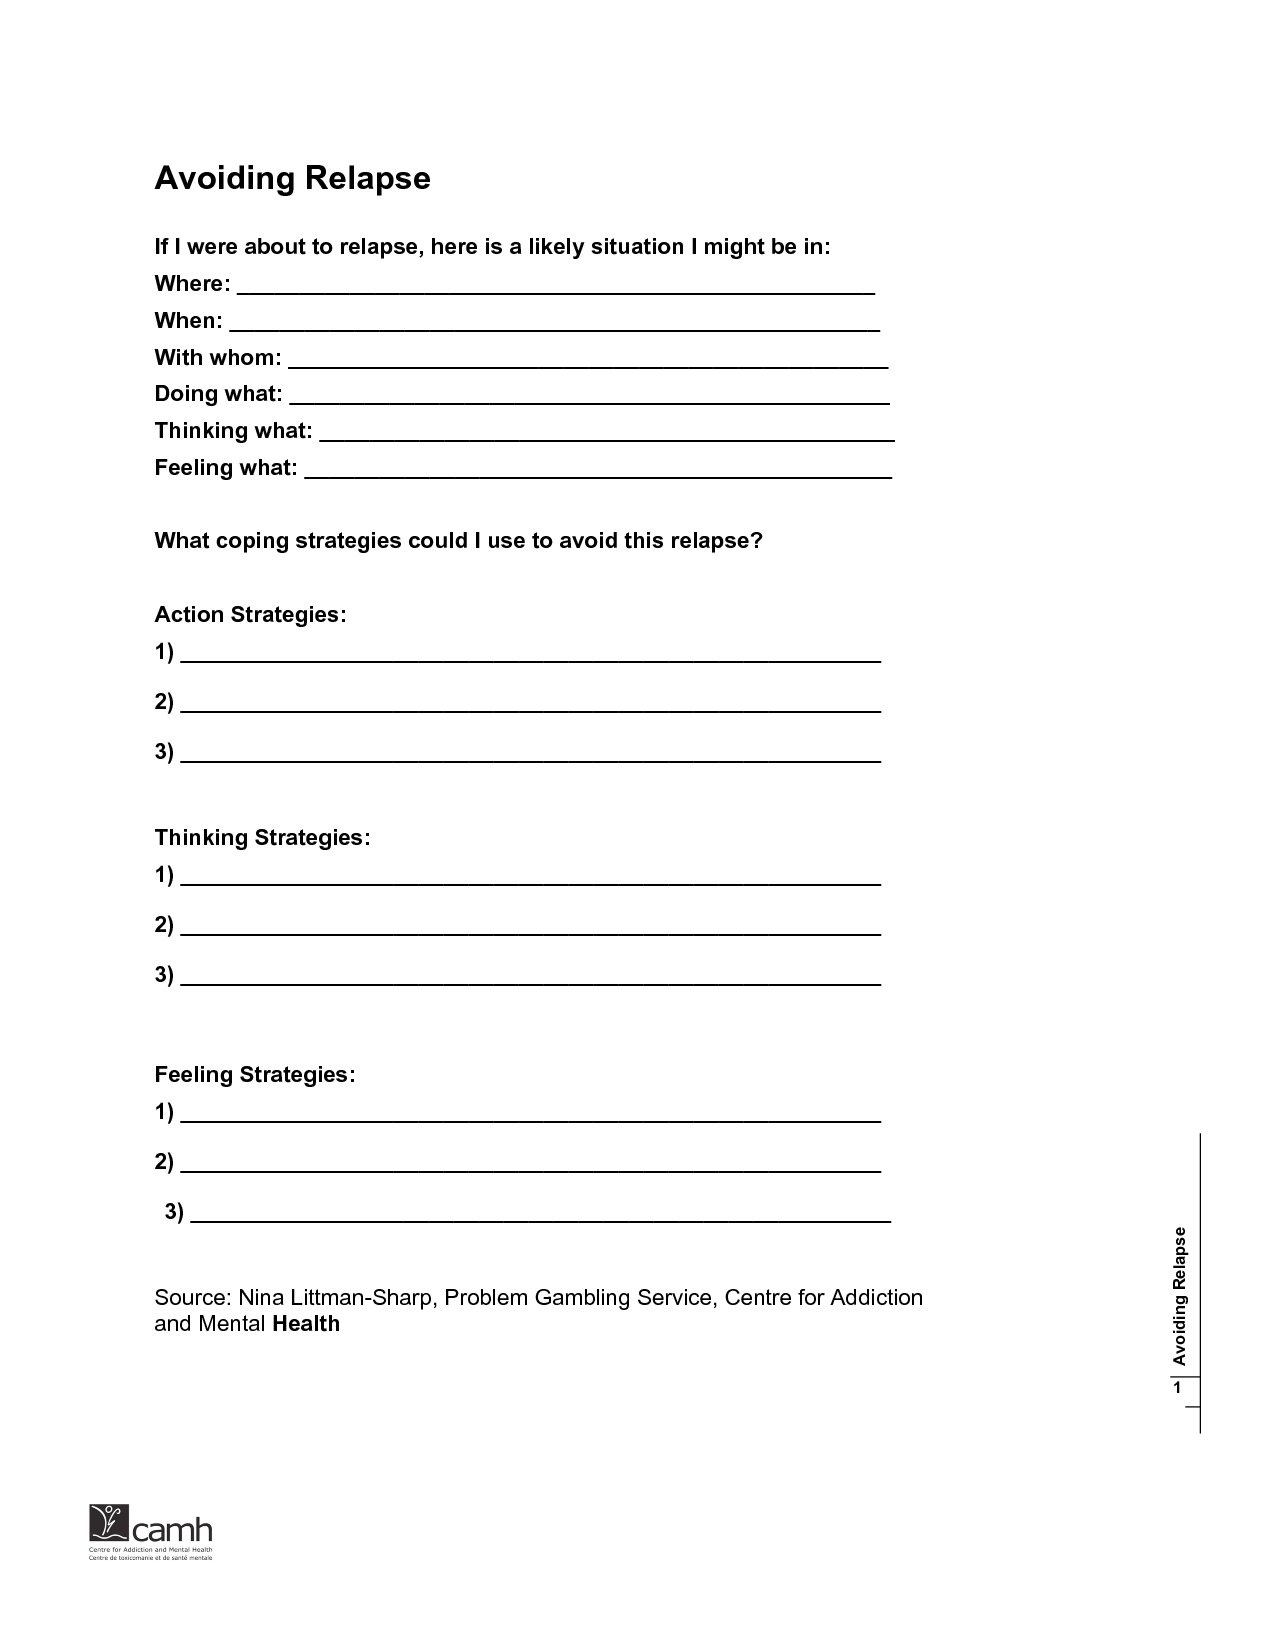 001 Substance Abuse Relapse Prevention Plan Template Amazing For Relapse Prevention Worksheets Pdf